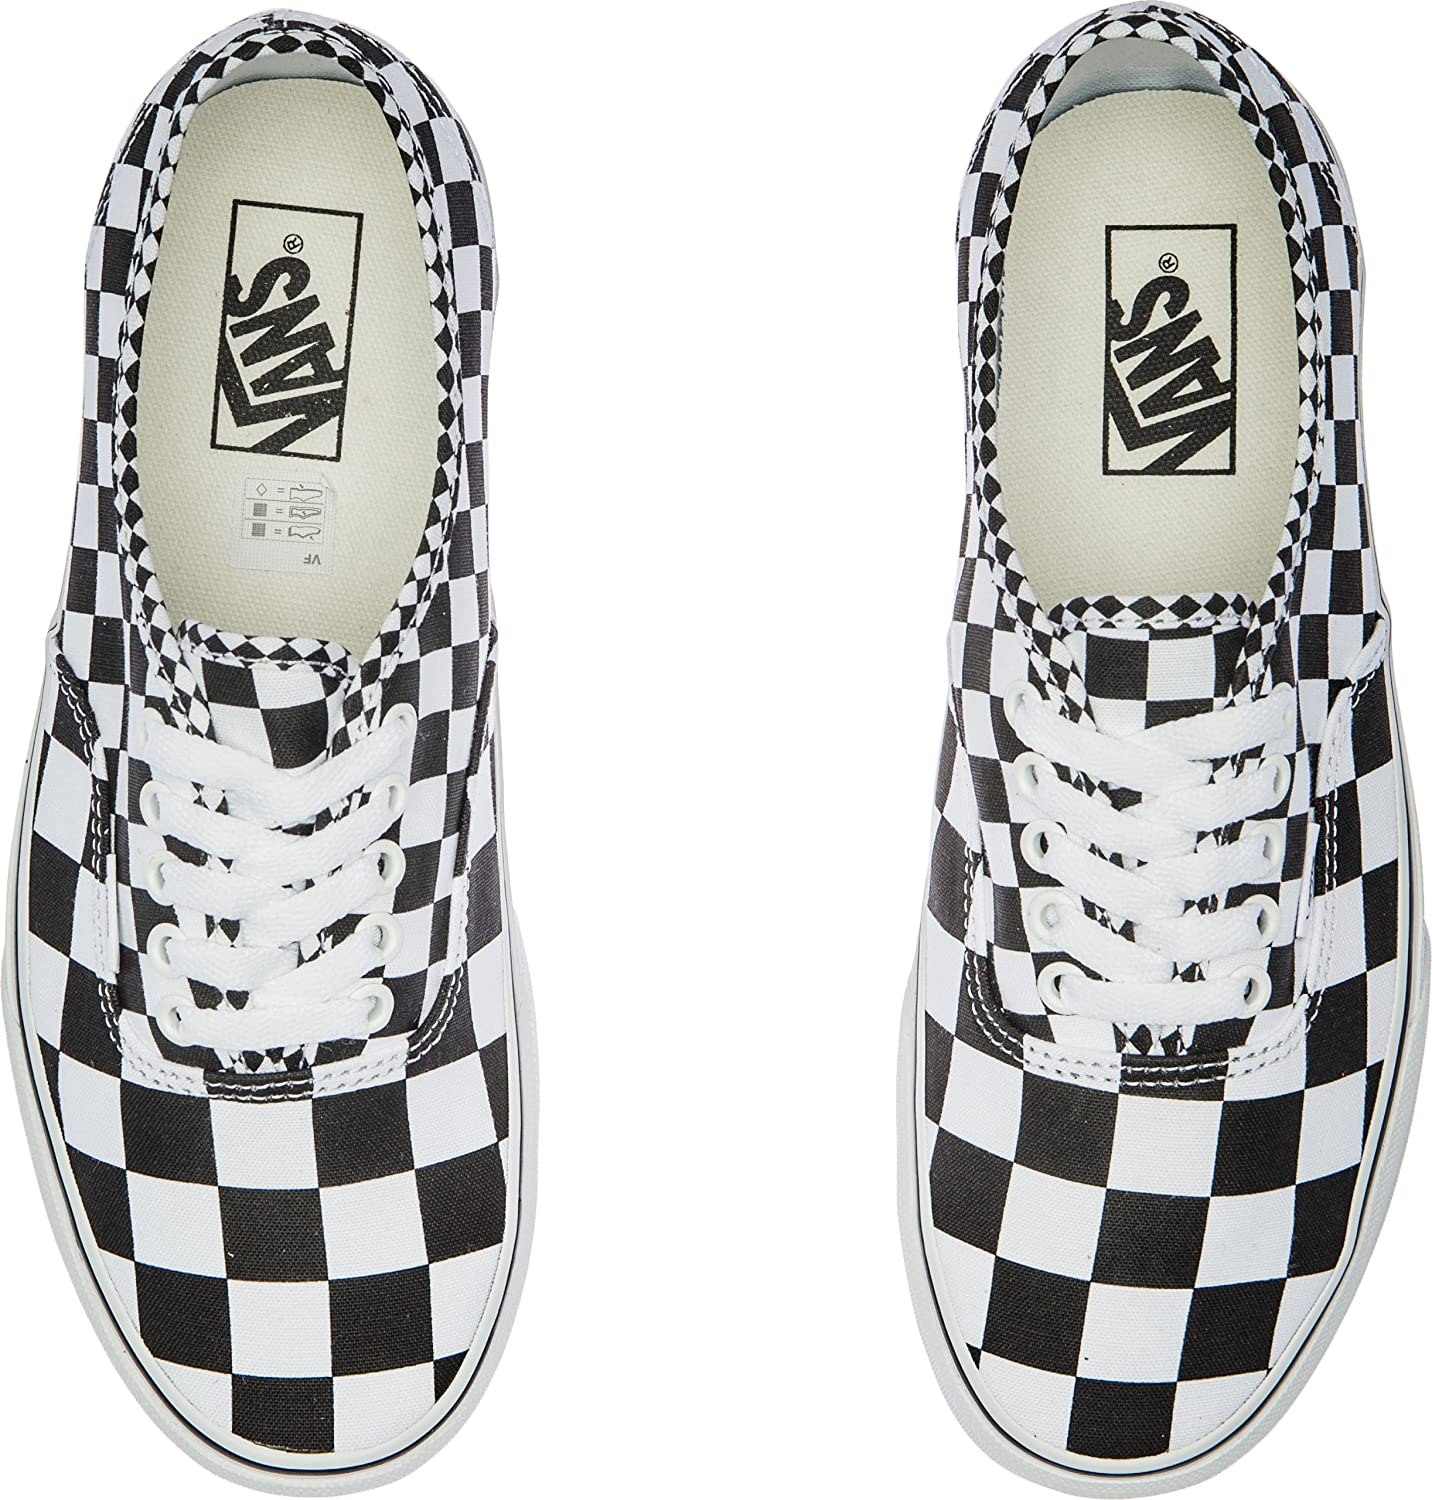 Vans Herren Authentic Core Classic Sneakers B07B4RW53W 35 M EU / 5.5 B(M) US Women / 4 D(M) US Men|(Mix Checker) Black/True White